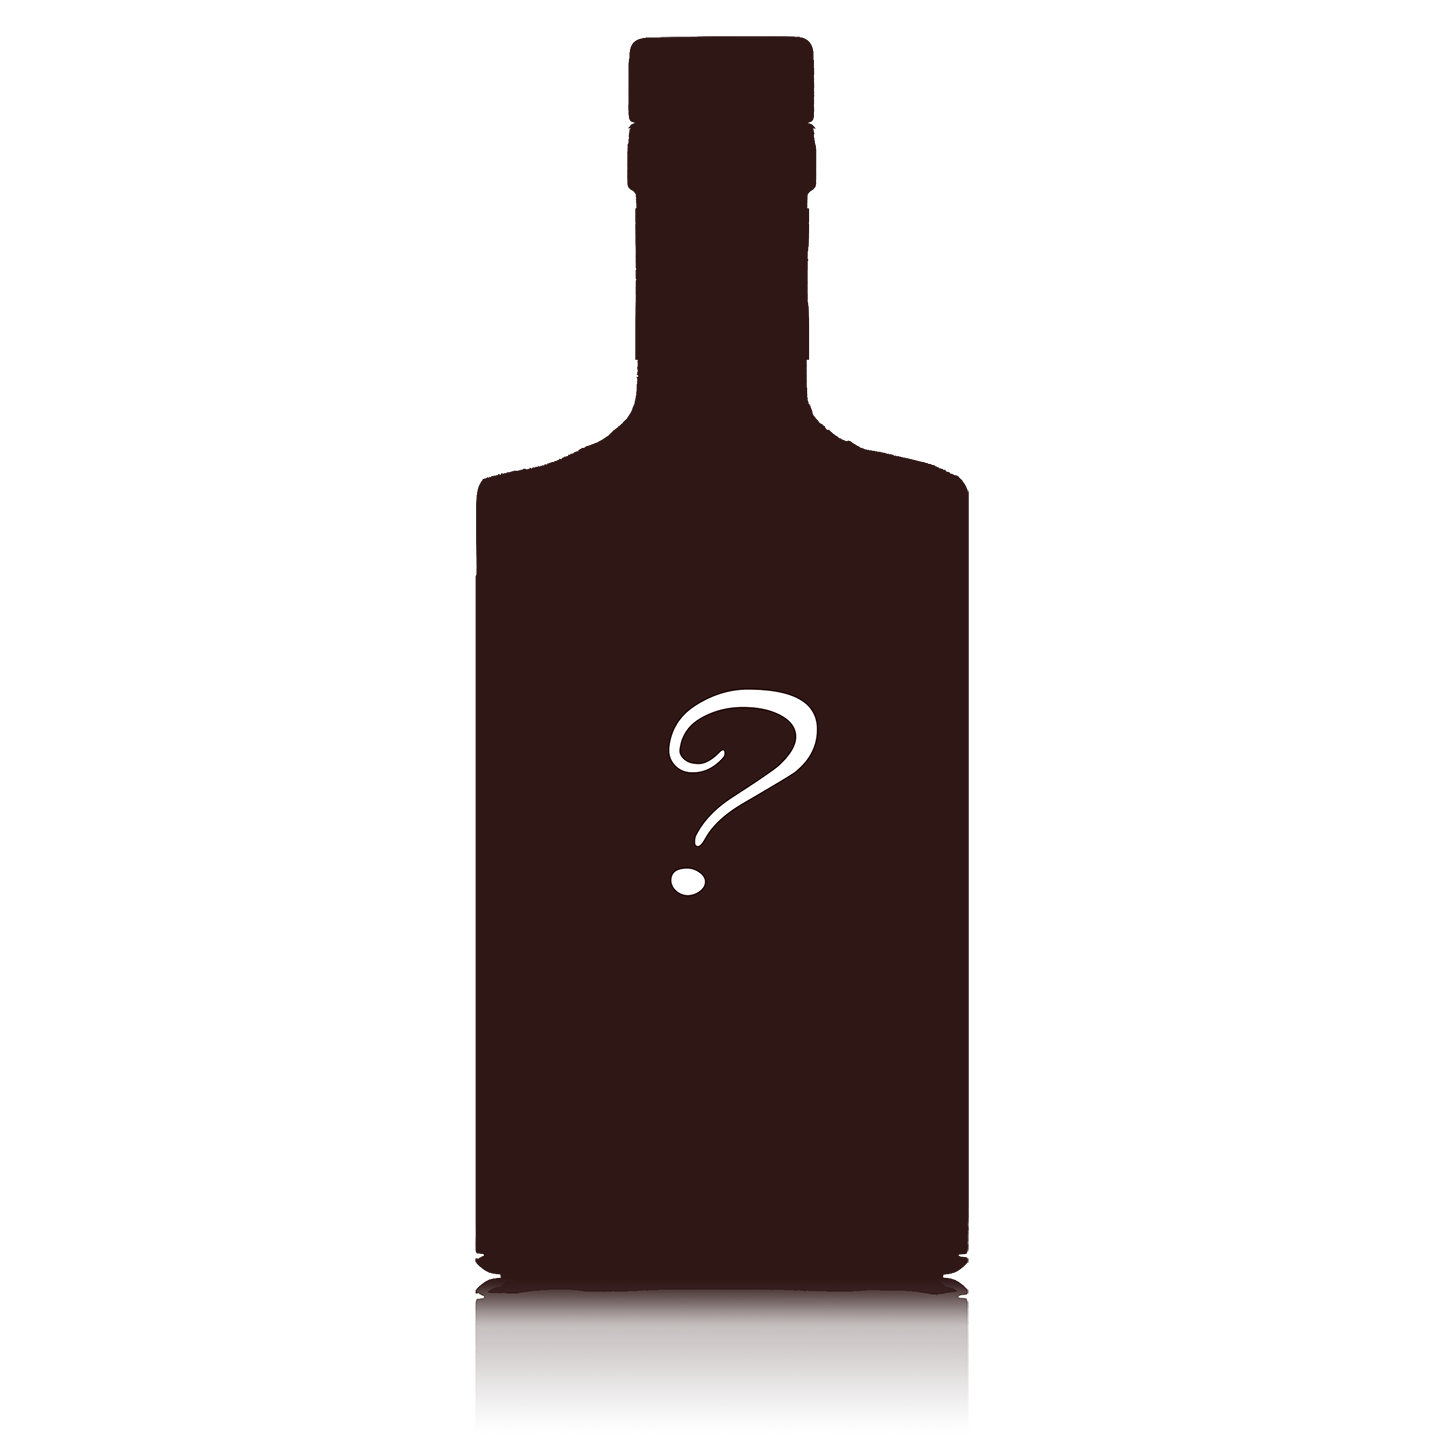 WHAT'S NEXT?   At Eight Oaks, we're always thinking about our next spirit and perfecting each recipe with local farm-grown goodies. Check back soon to see what's in the barrels!